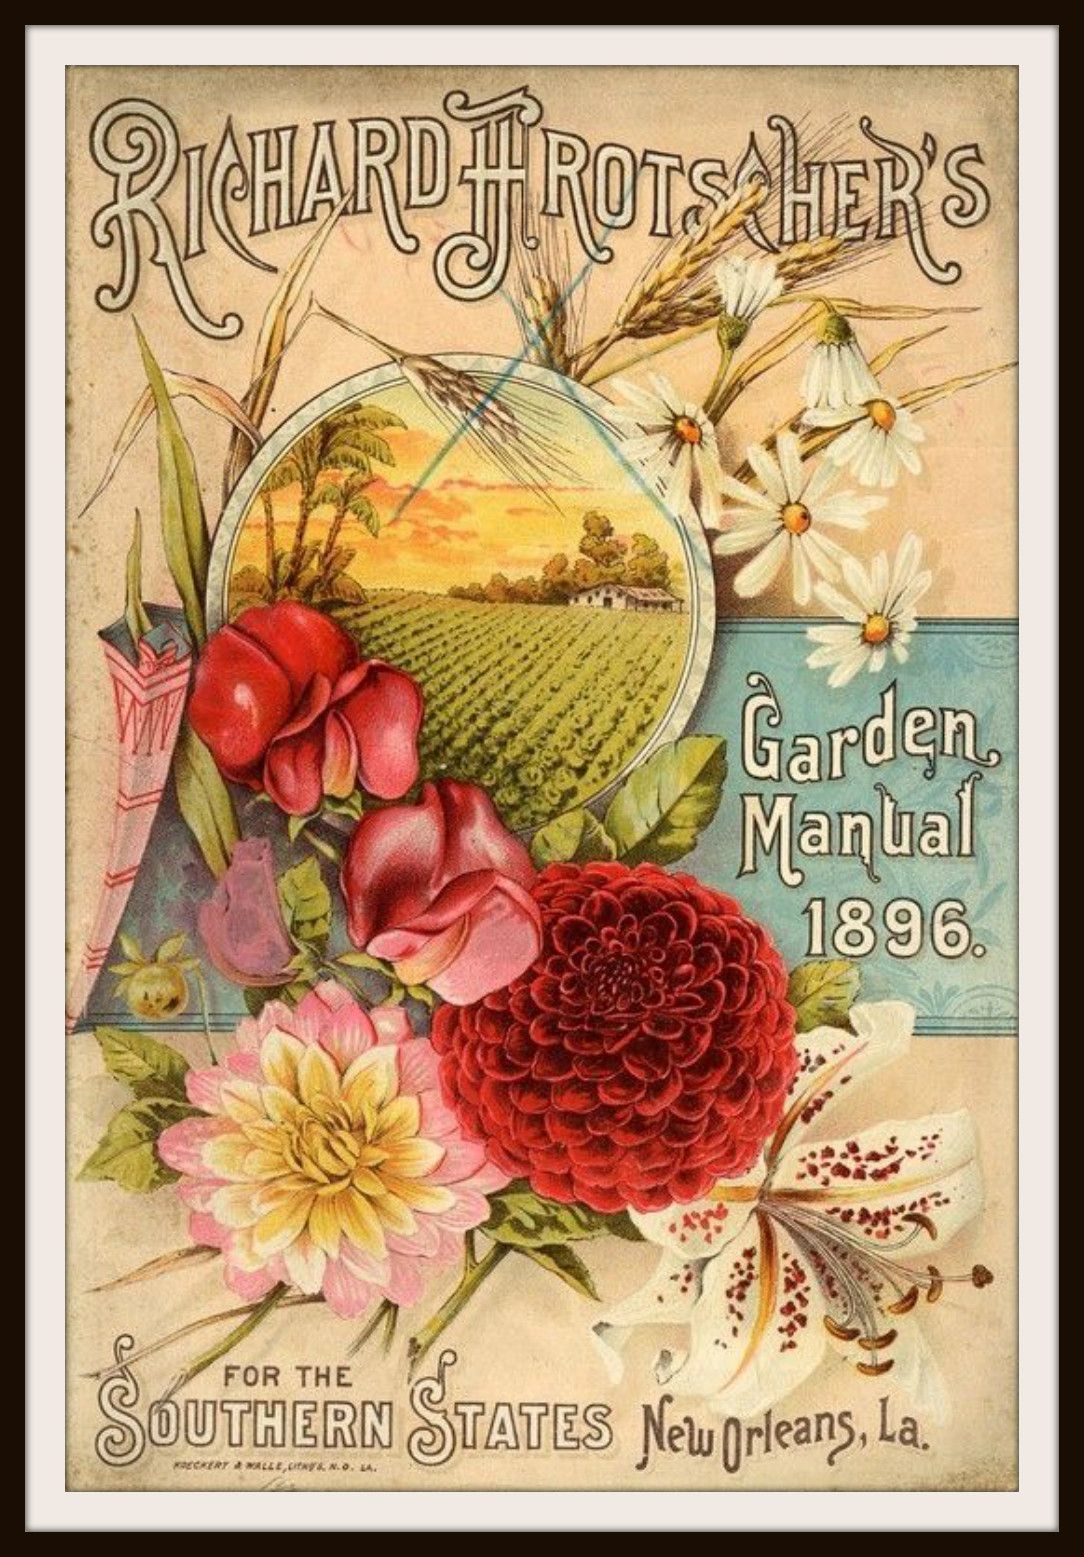 Vintage Reproduction Seed Pack Cover Art Print | Seed packets ...